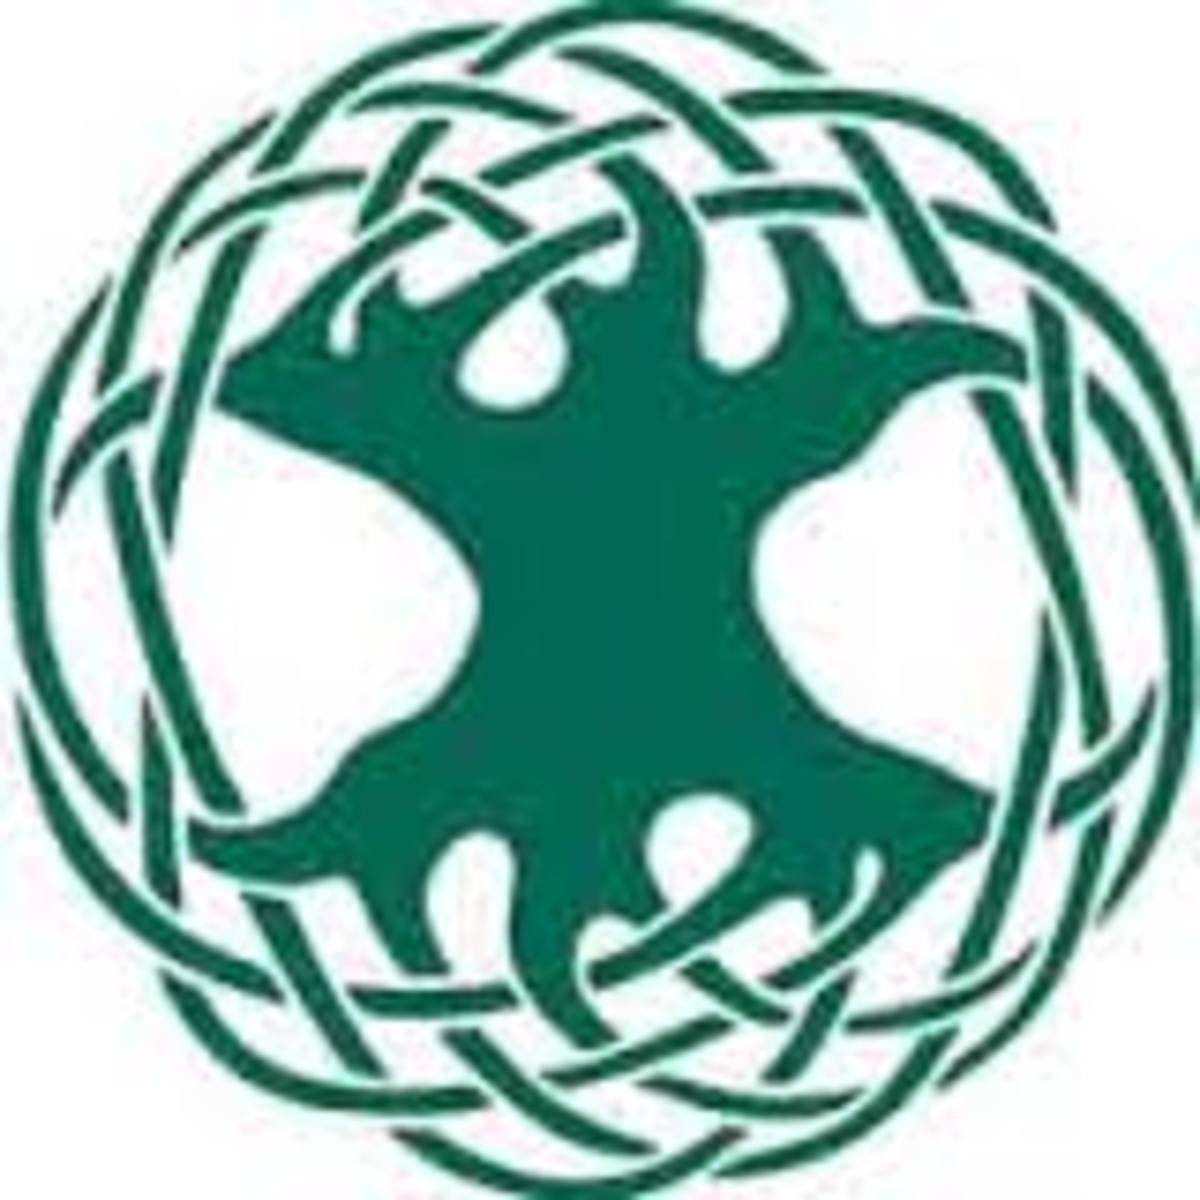 Used as a symbol to describe the forest (tree) of life that is our planet Earth it also shows the Hollow Earth concept as well (As Above, So Below).